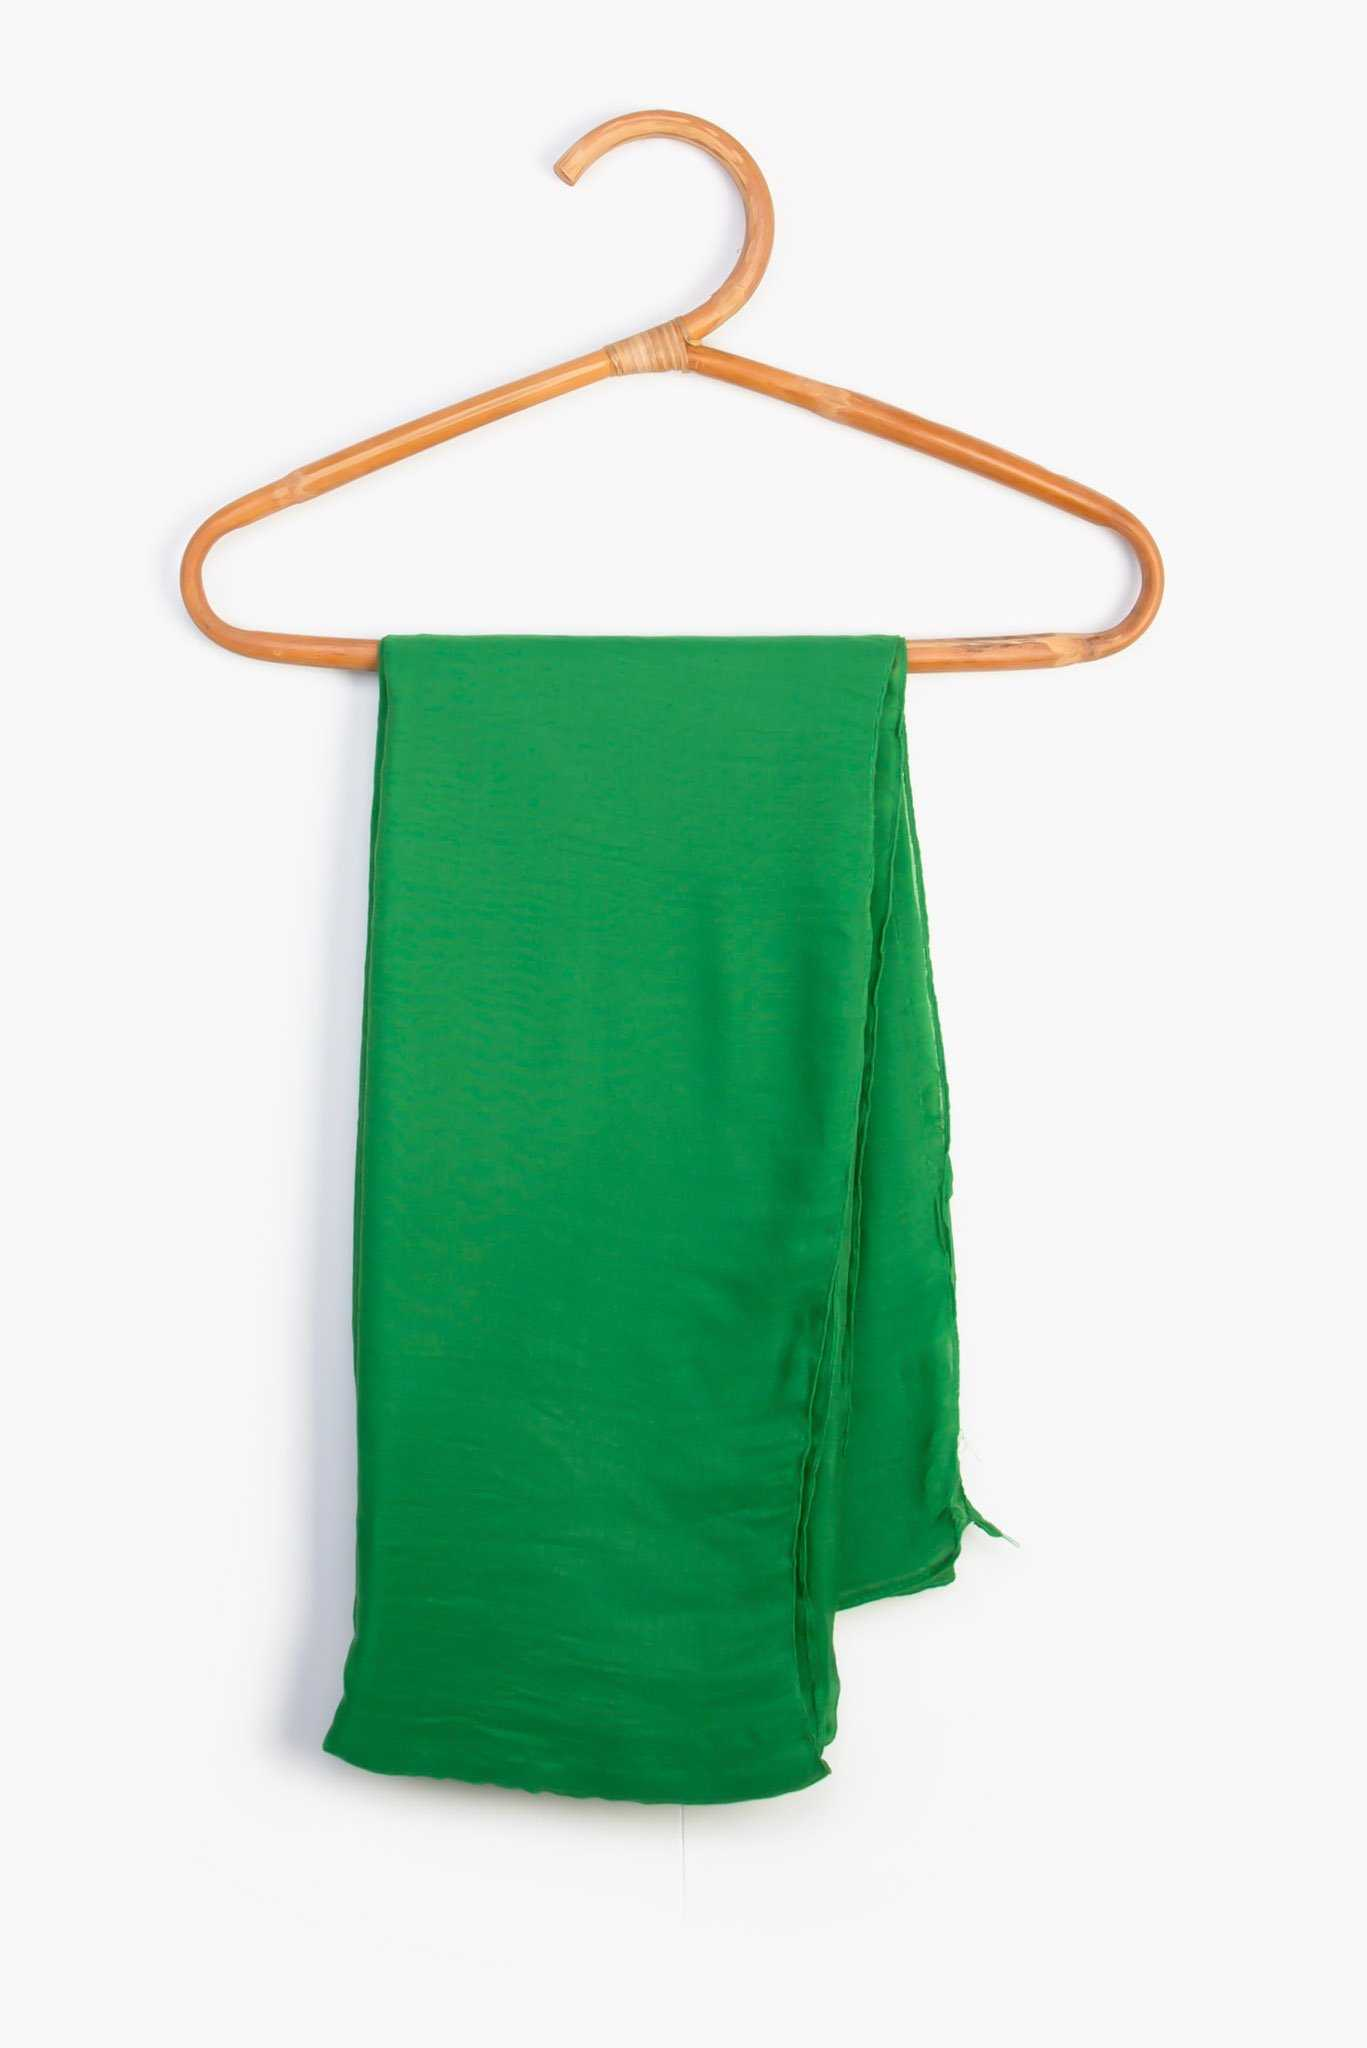 Scarf - Dark Green | Raw Orange